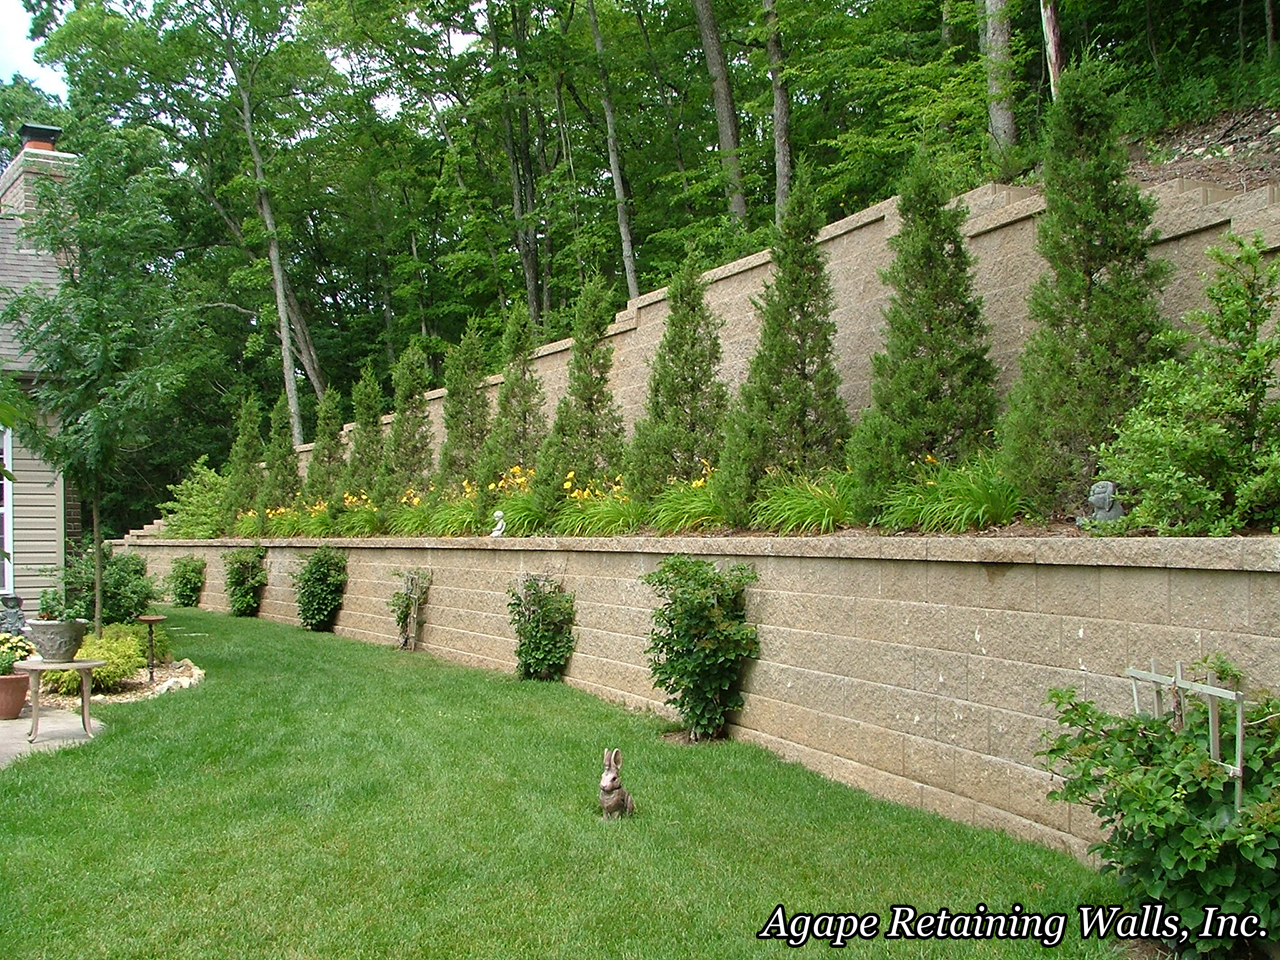 Backyard Retaining Wall Designs Plans Custom Railway Sleeper Landscaping Ideas Retaining Wall Ideas Wooden . 2017